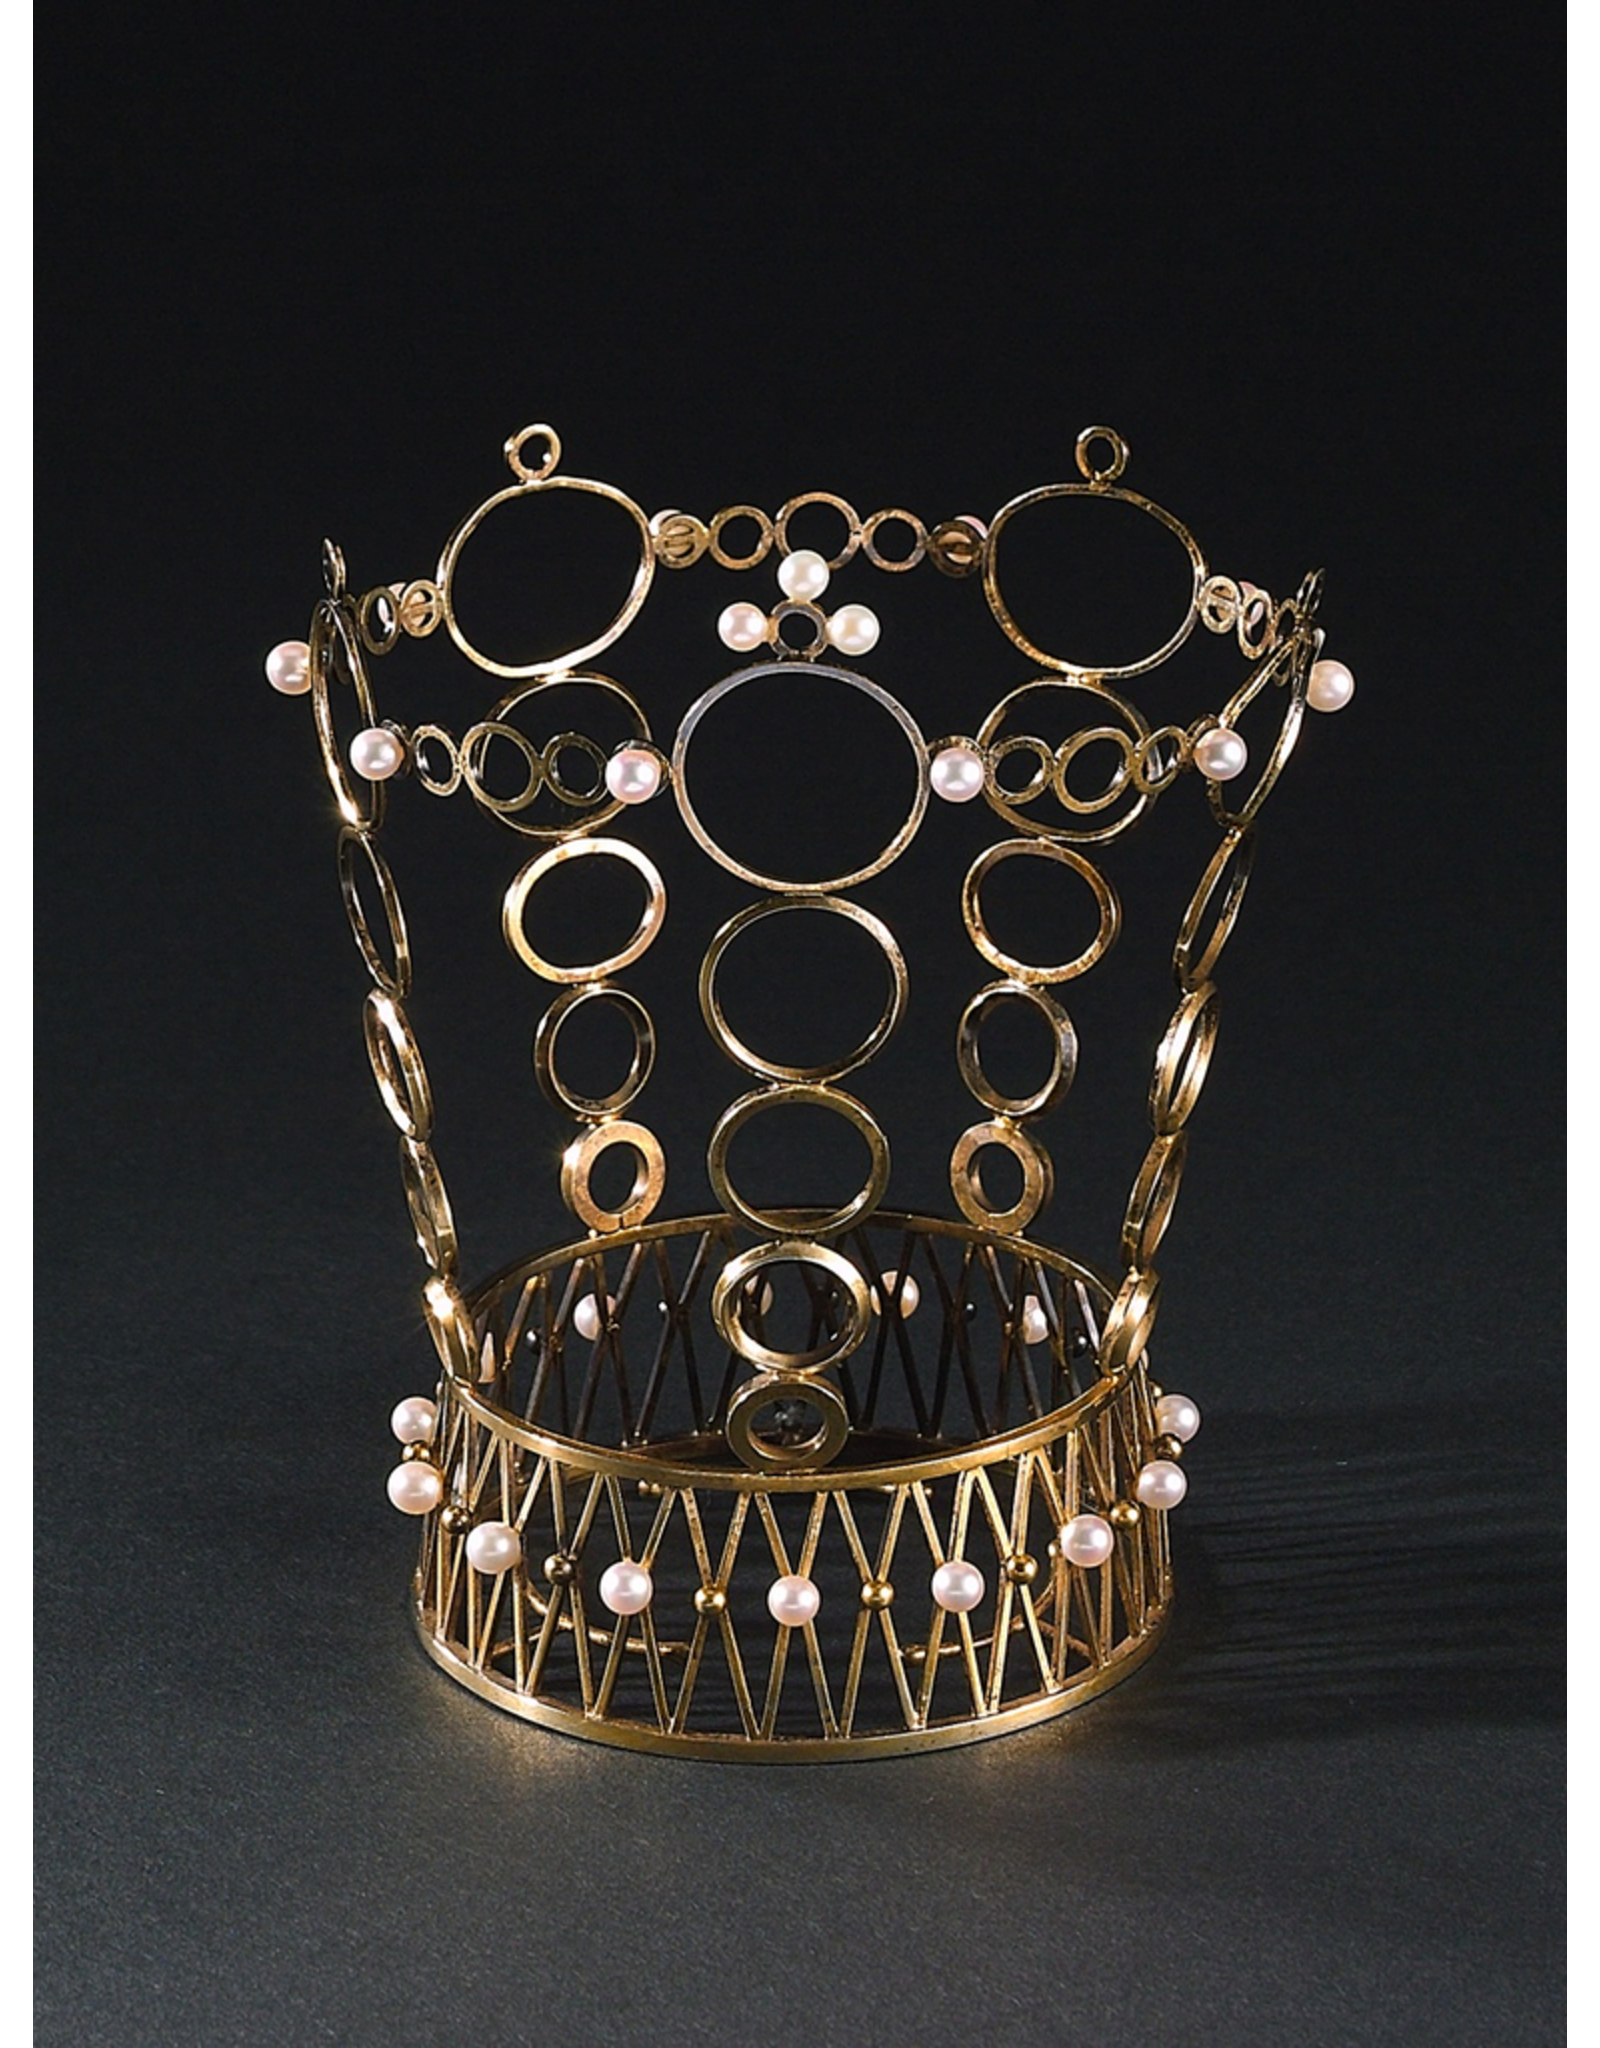 MANKS ANTIQUES VERMEILLE BRIDAL CROWN WITH SEED PEARLS